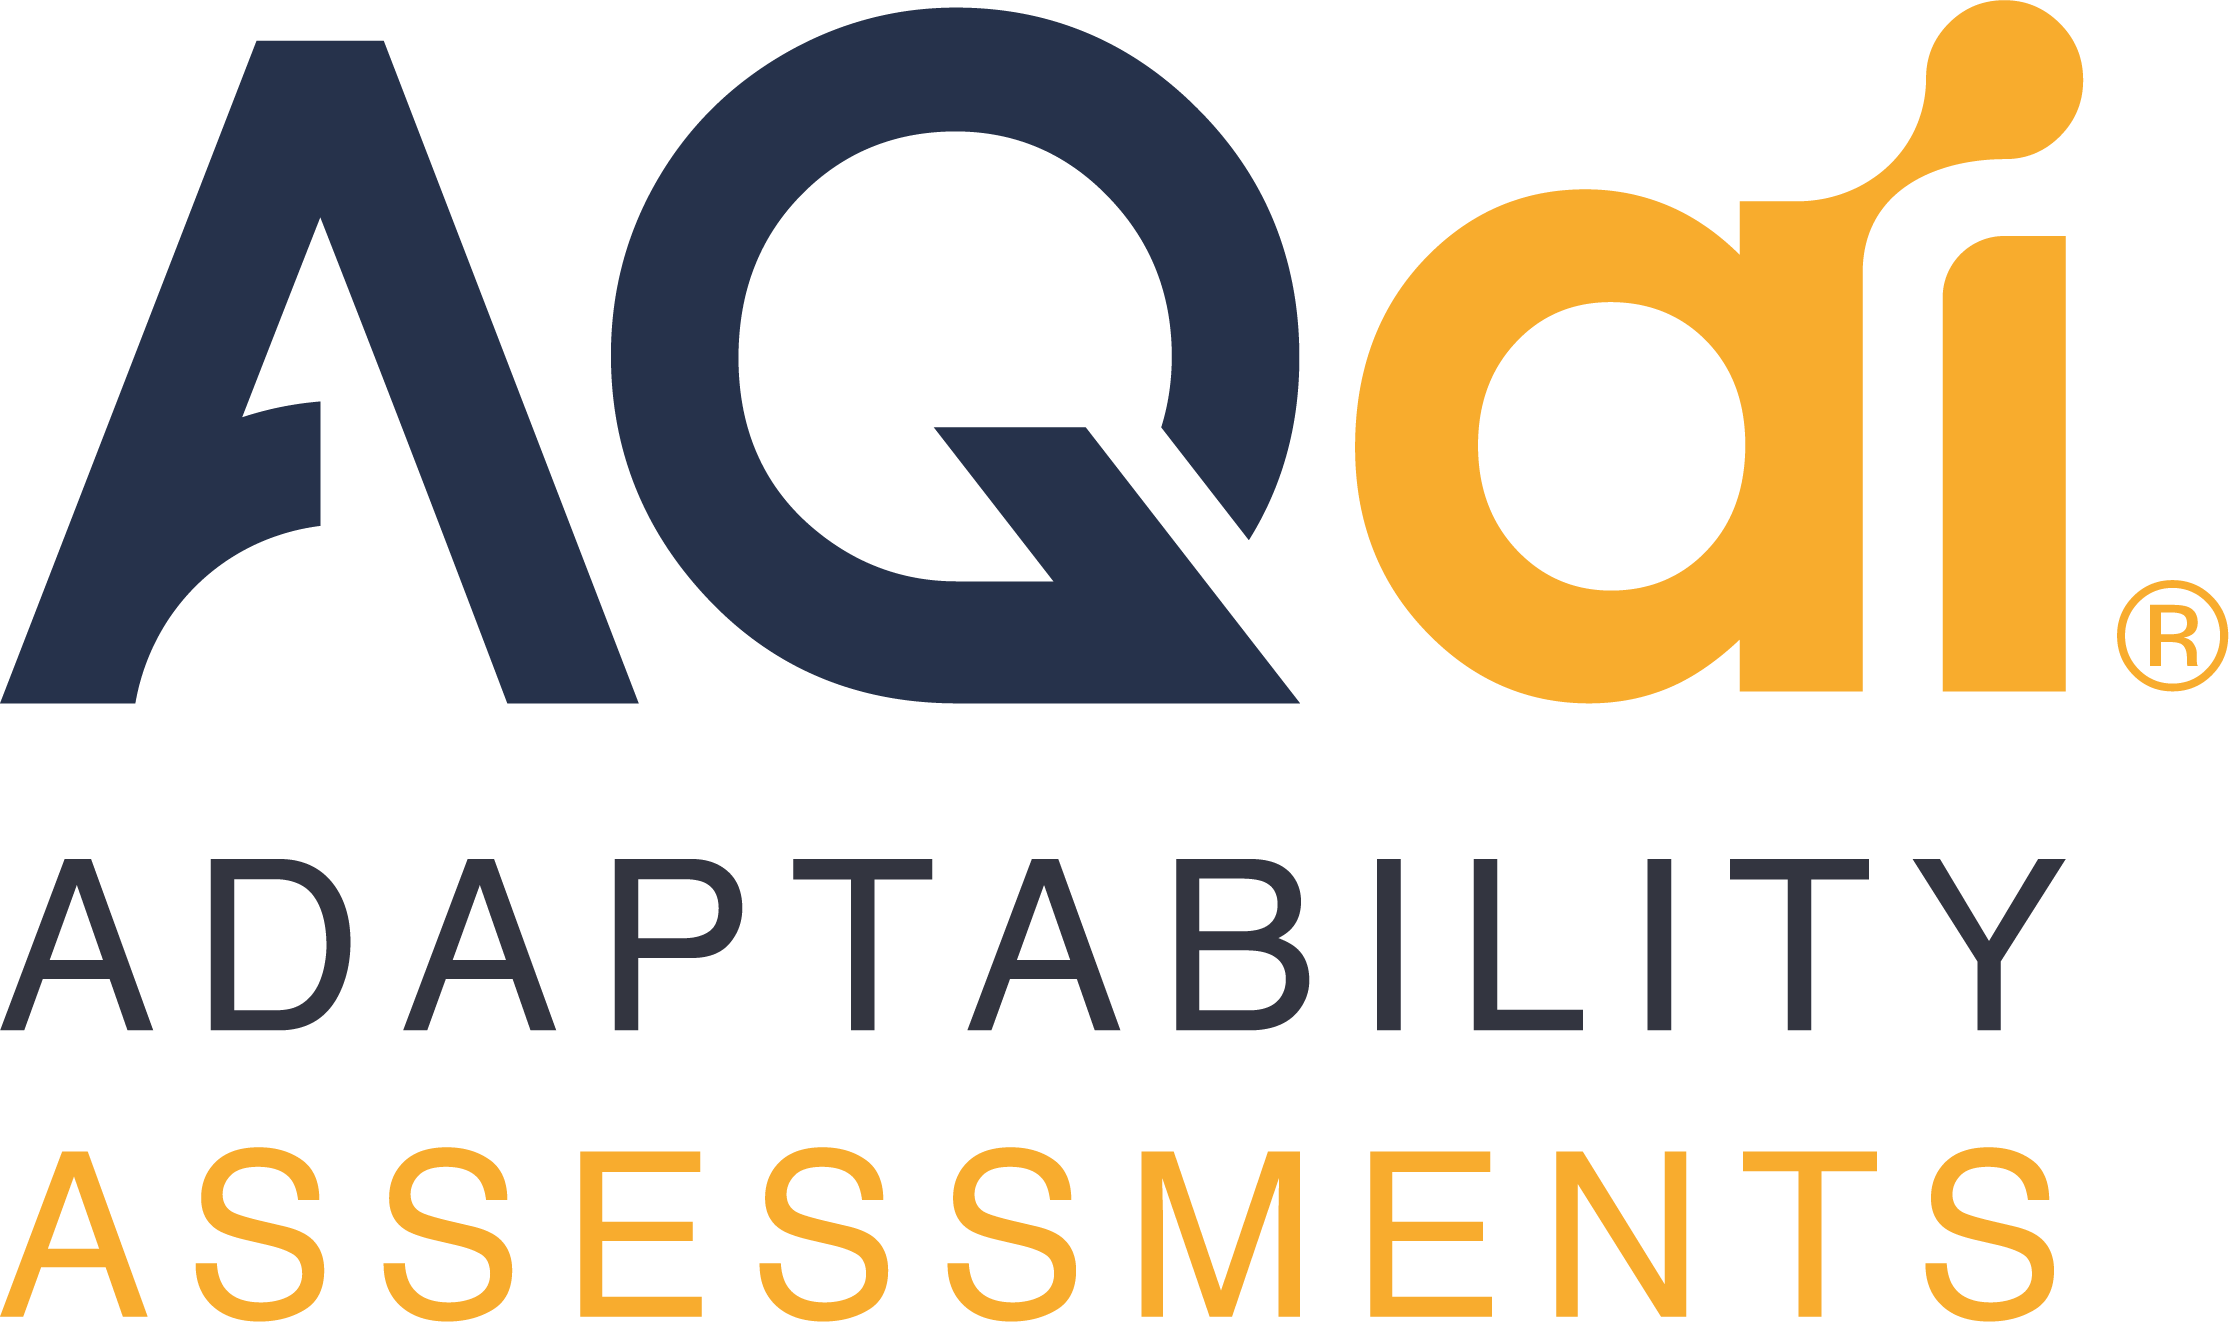 AQai | The Adaptability Quotient (AQ) Assessment Tool